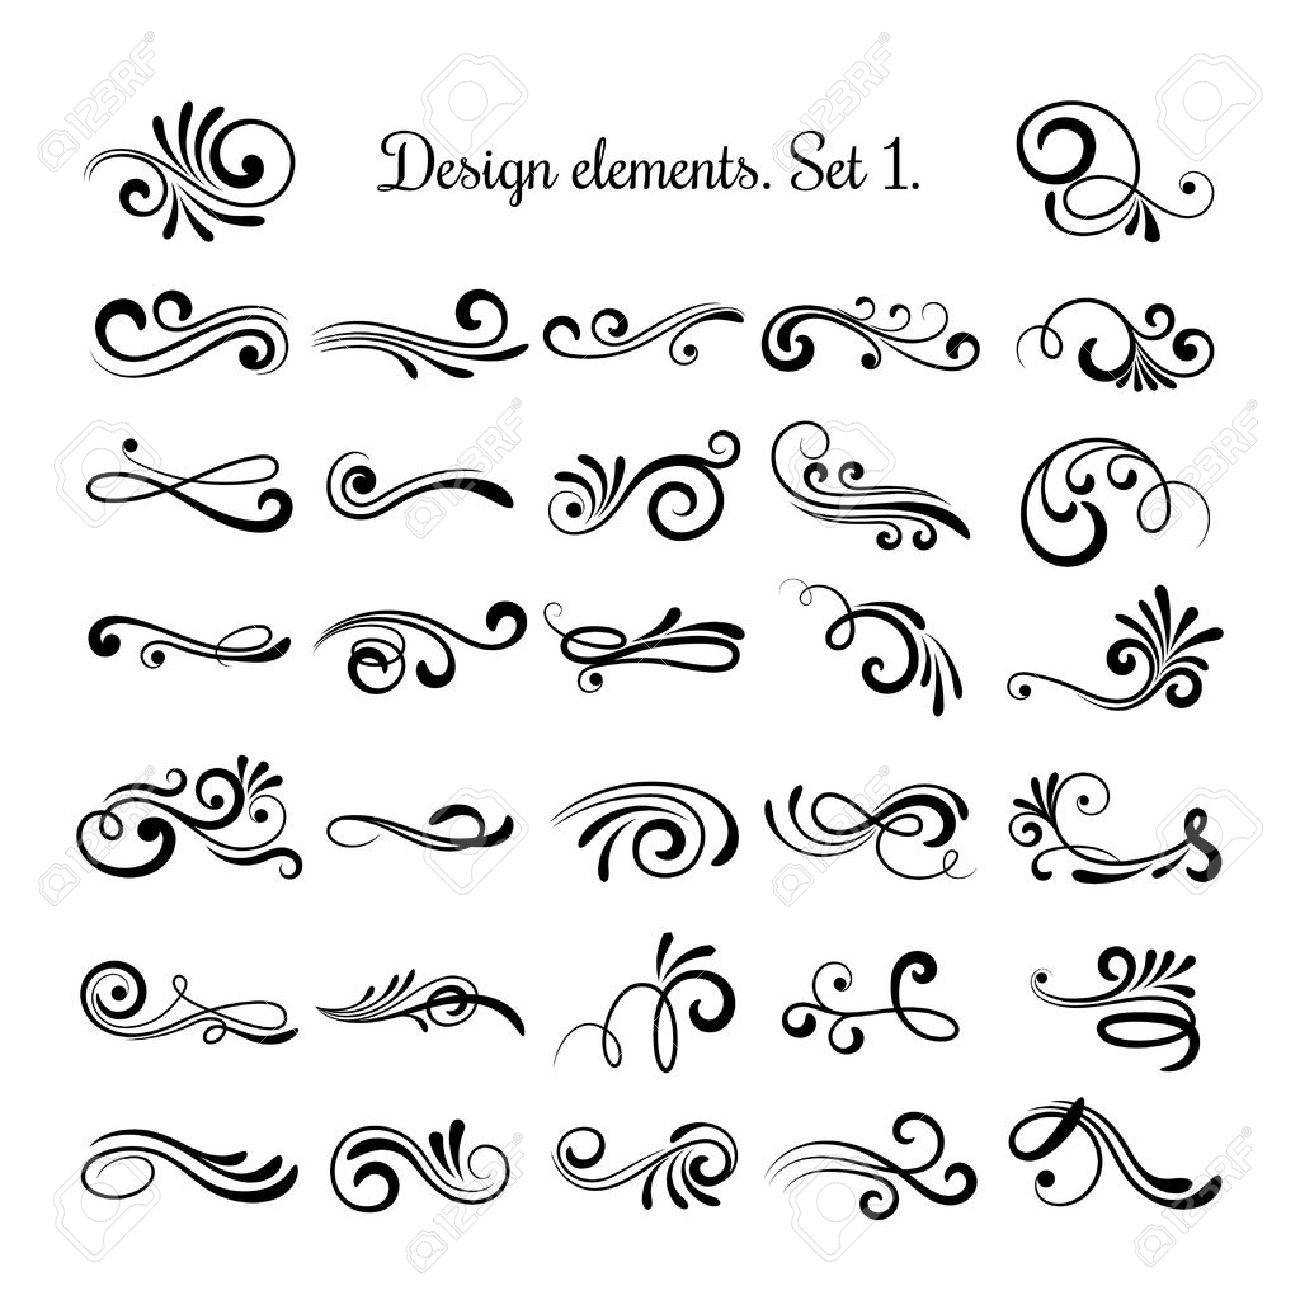 Swirly line curl patterns isolated on white background vector swirly line curl patterns isolated on white background vector flourish vintage embellishments for greeting cards stopboris Images